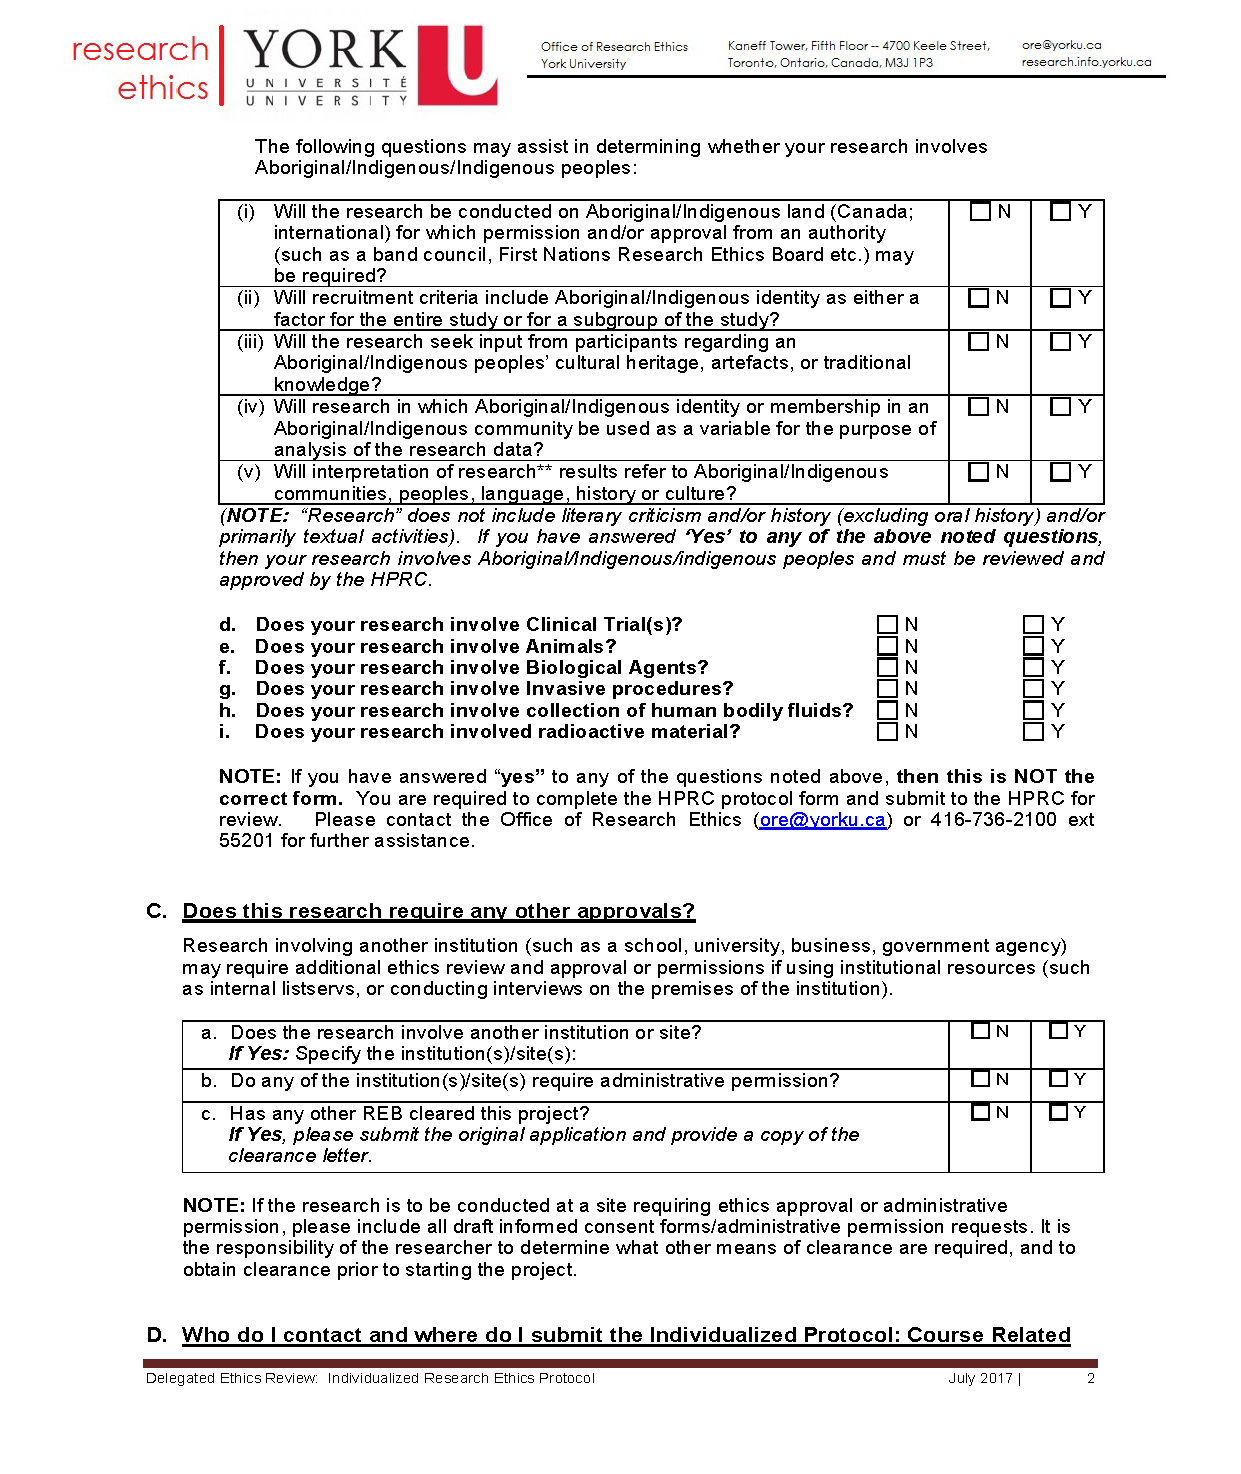 full-size image of the individualized protocol from research ethics page 2